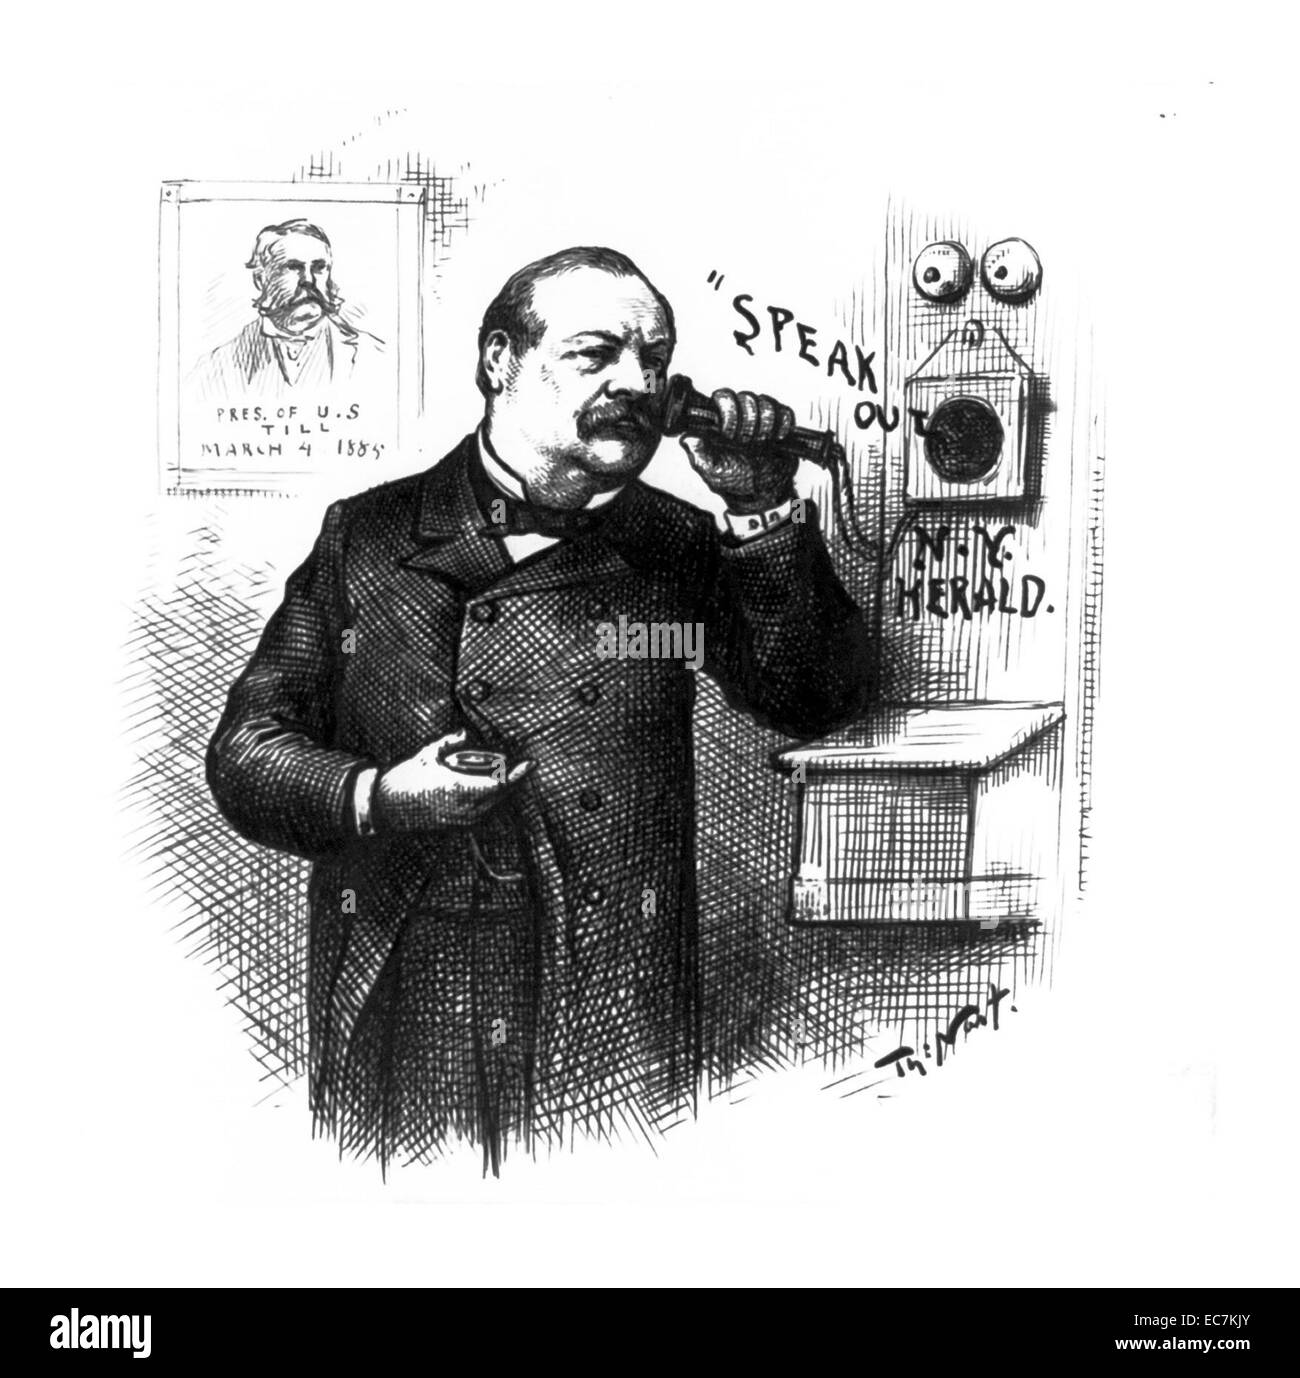 Speak out' N.Y. Herald. President-elect Grover Cleveland holds a telephone receiver to his ear. Behind him on - Stock Image